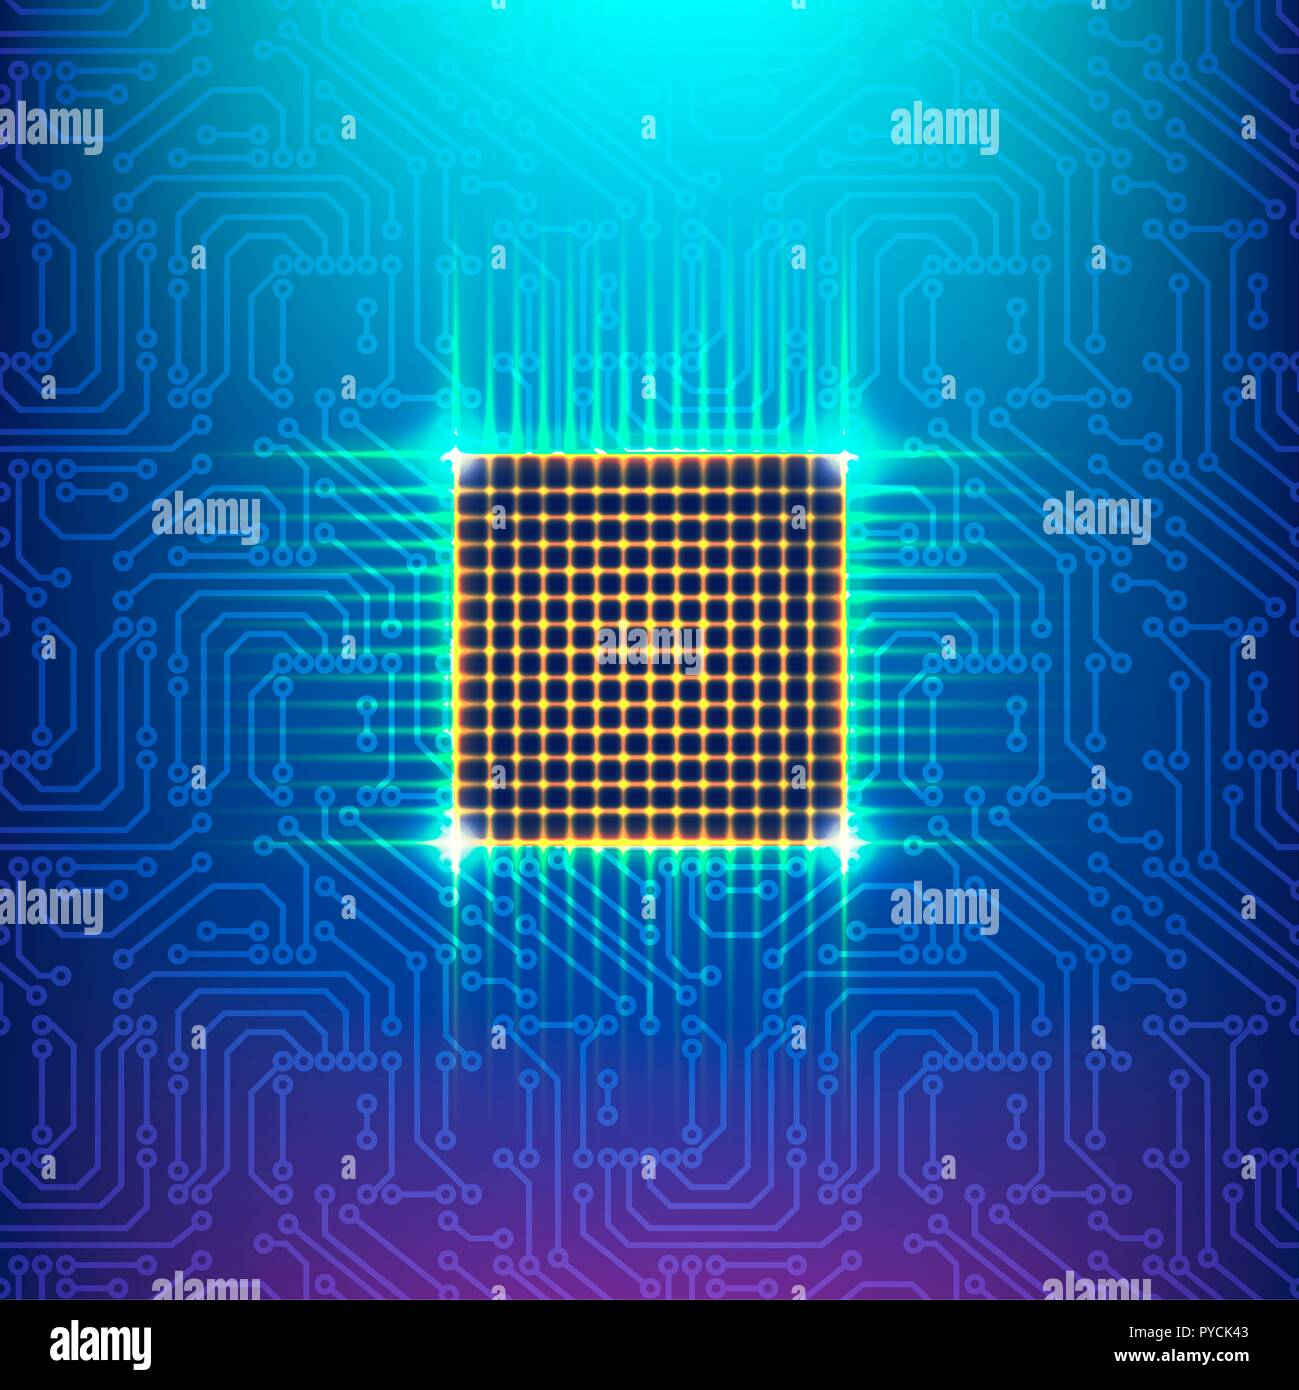 Computer chip, illustration. - Stock Image